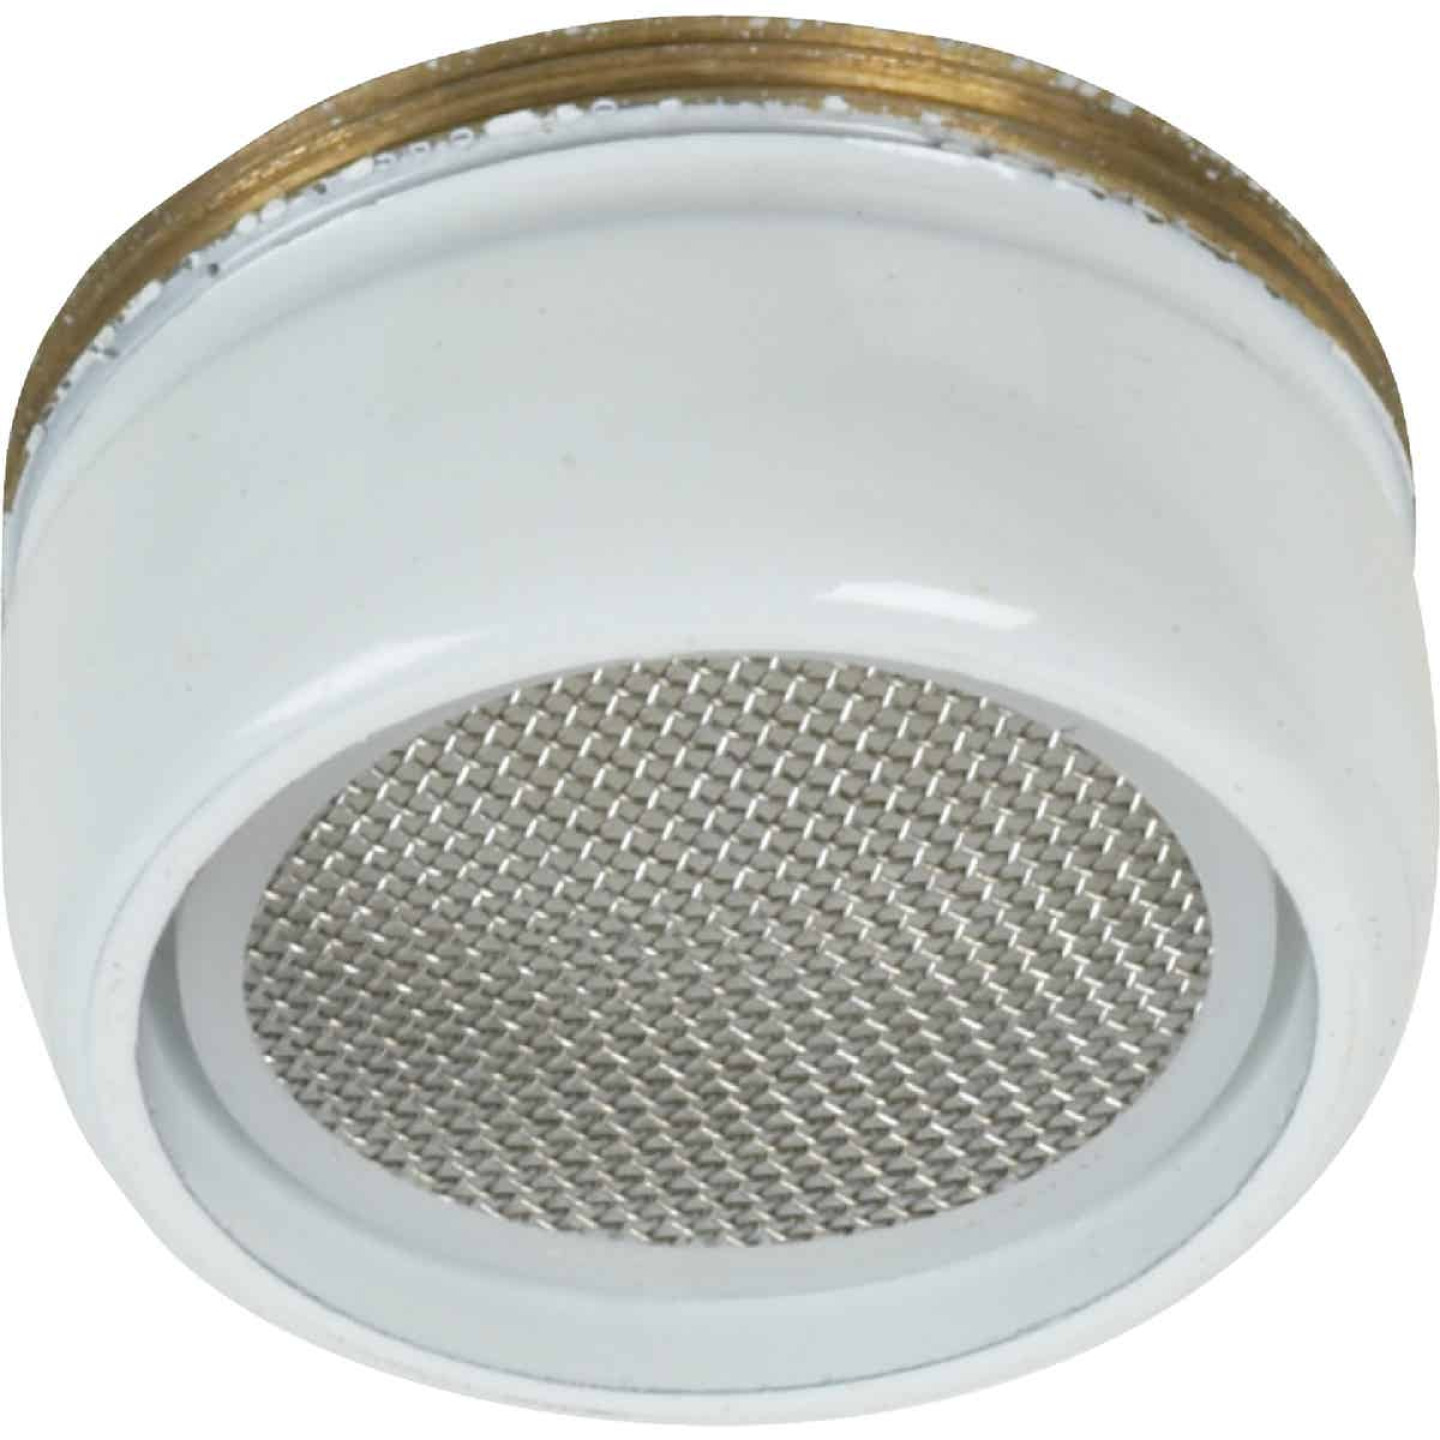 Do it 2.0 GPM Low Lead Faucet Aerator Image 1